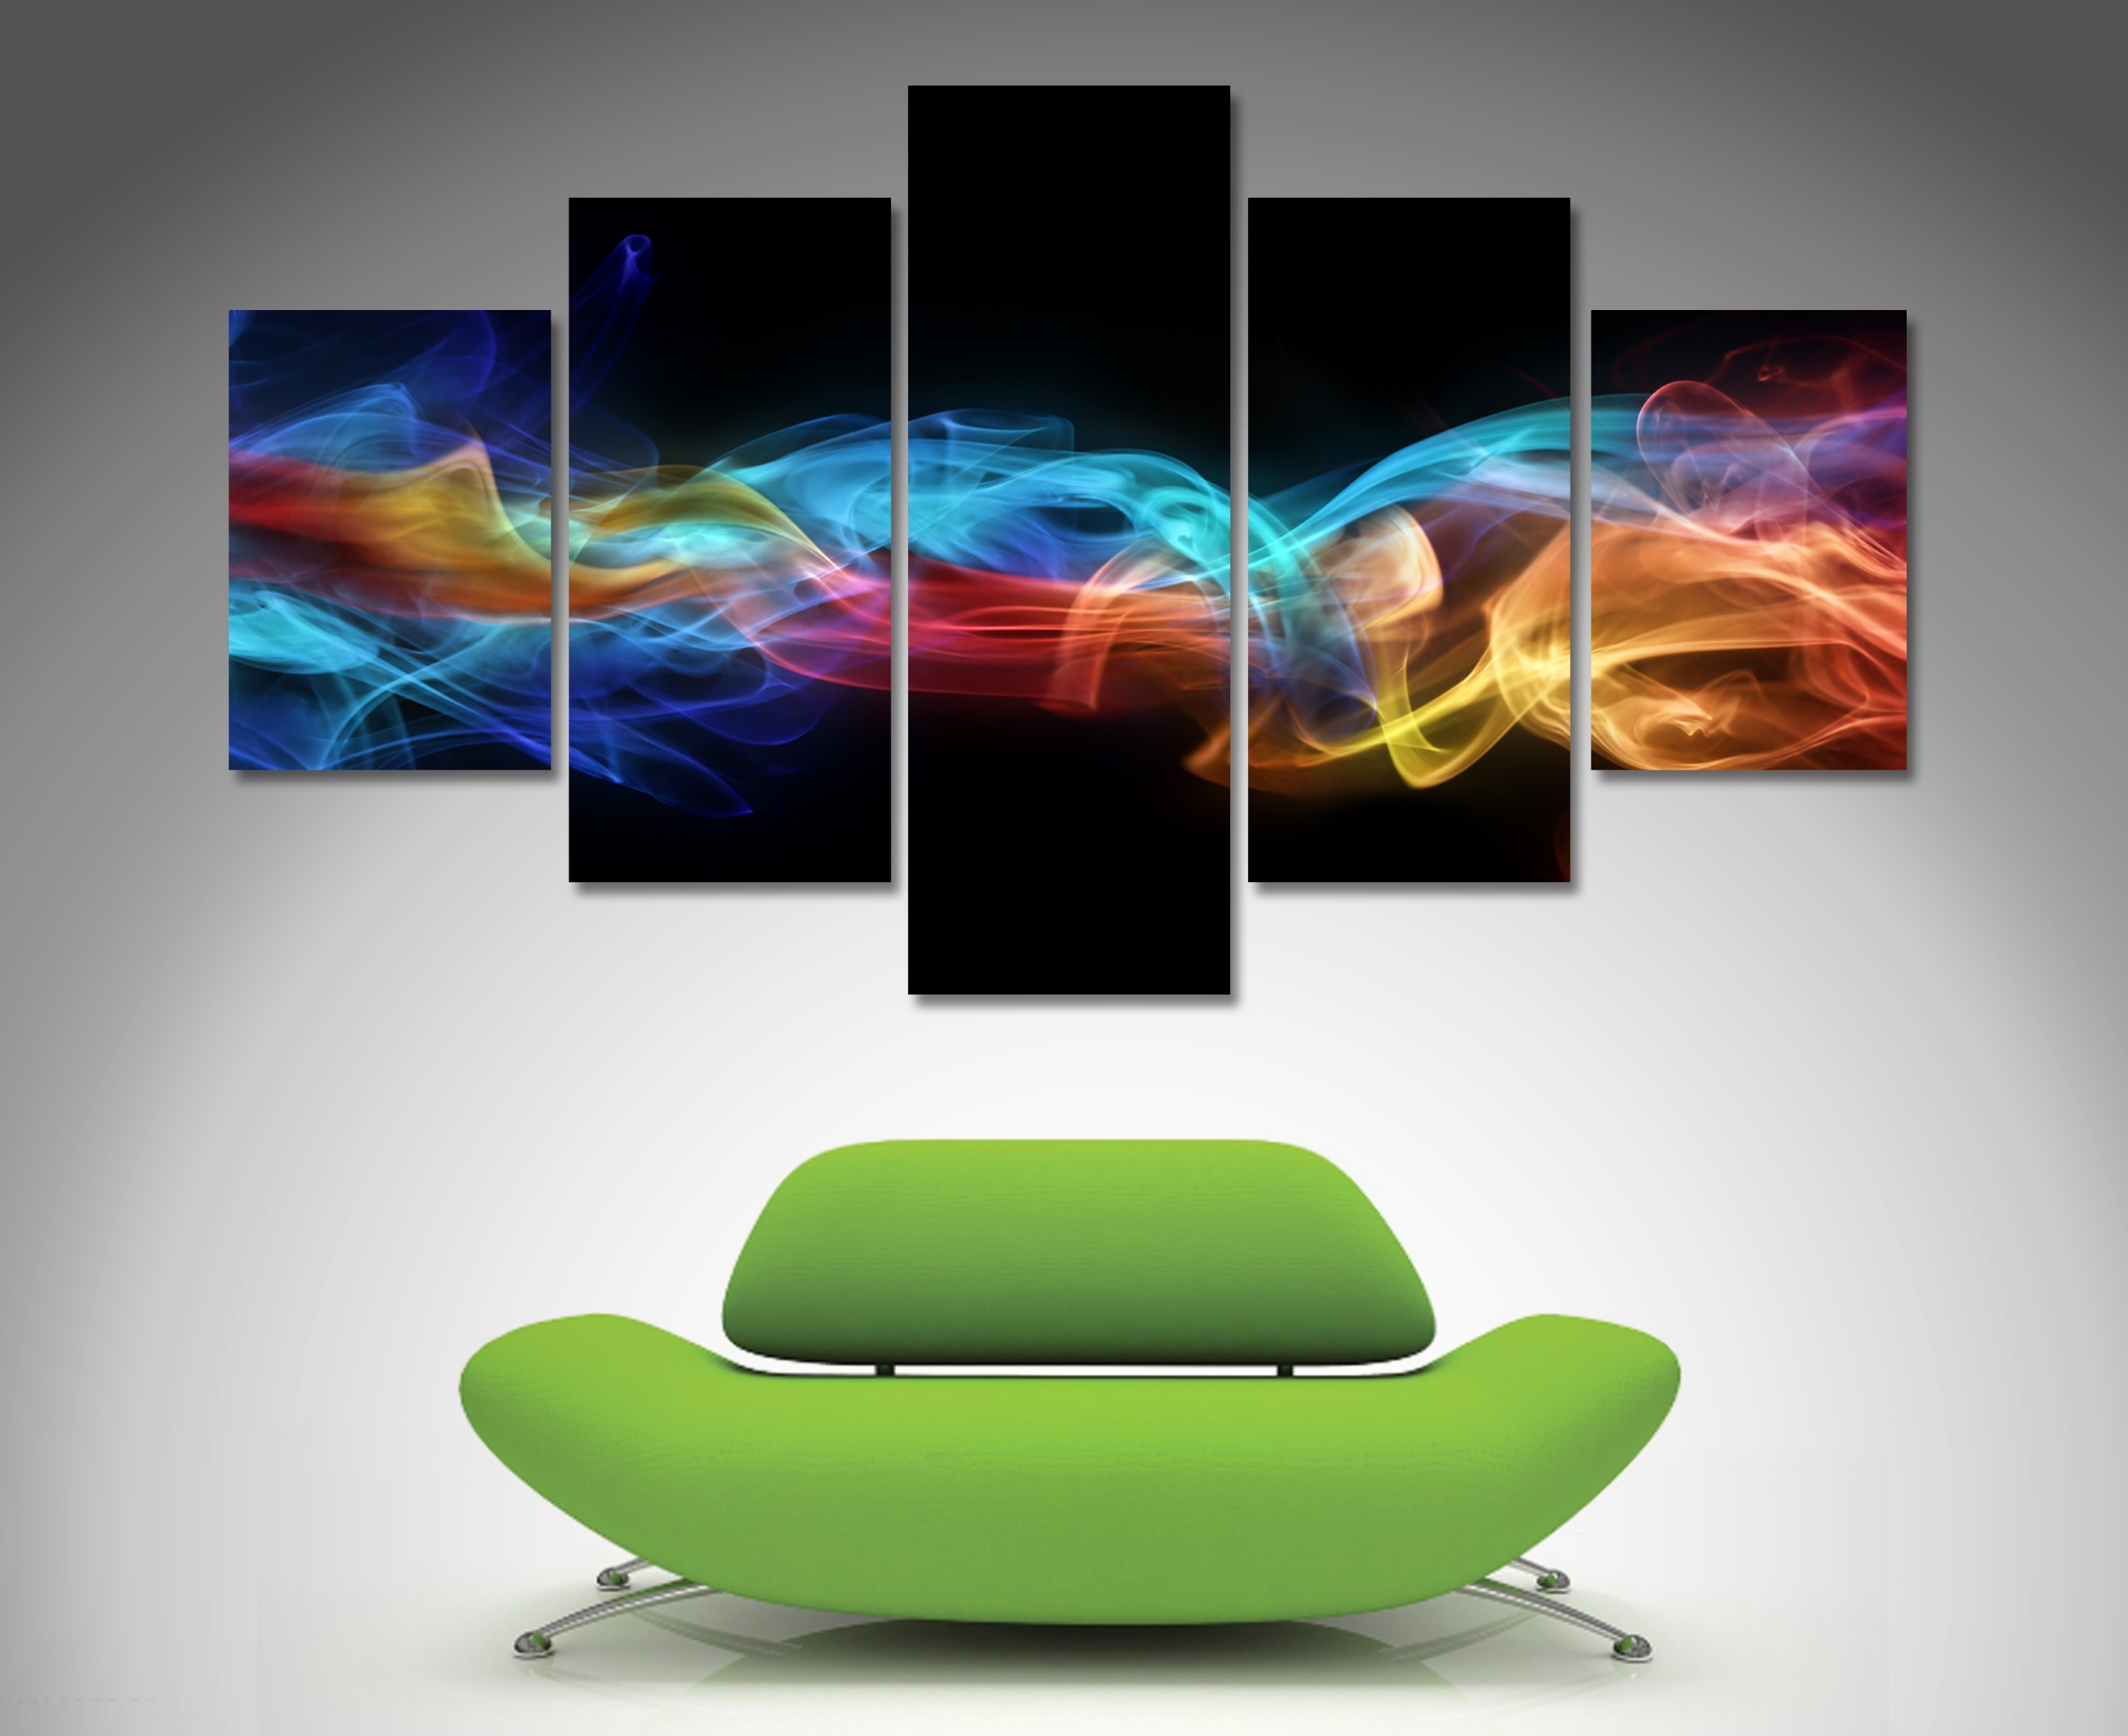 Fire And Ice 5 Panel Wall Art | Canvas Printing Australia For Most Recently Released 5 Panel Wall Art (View 7 of 20)